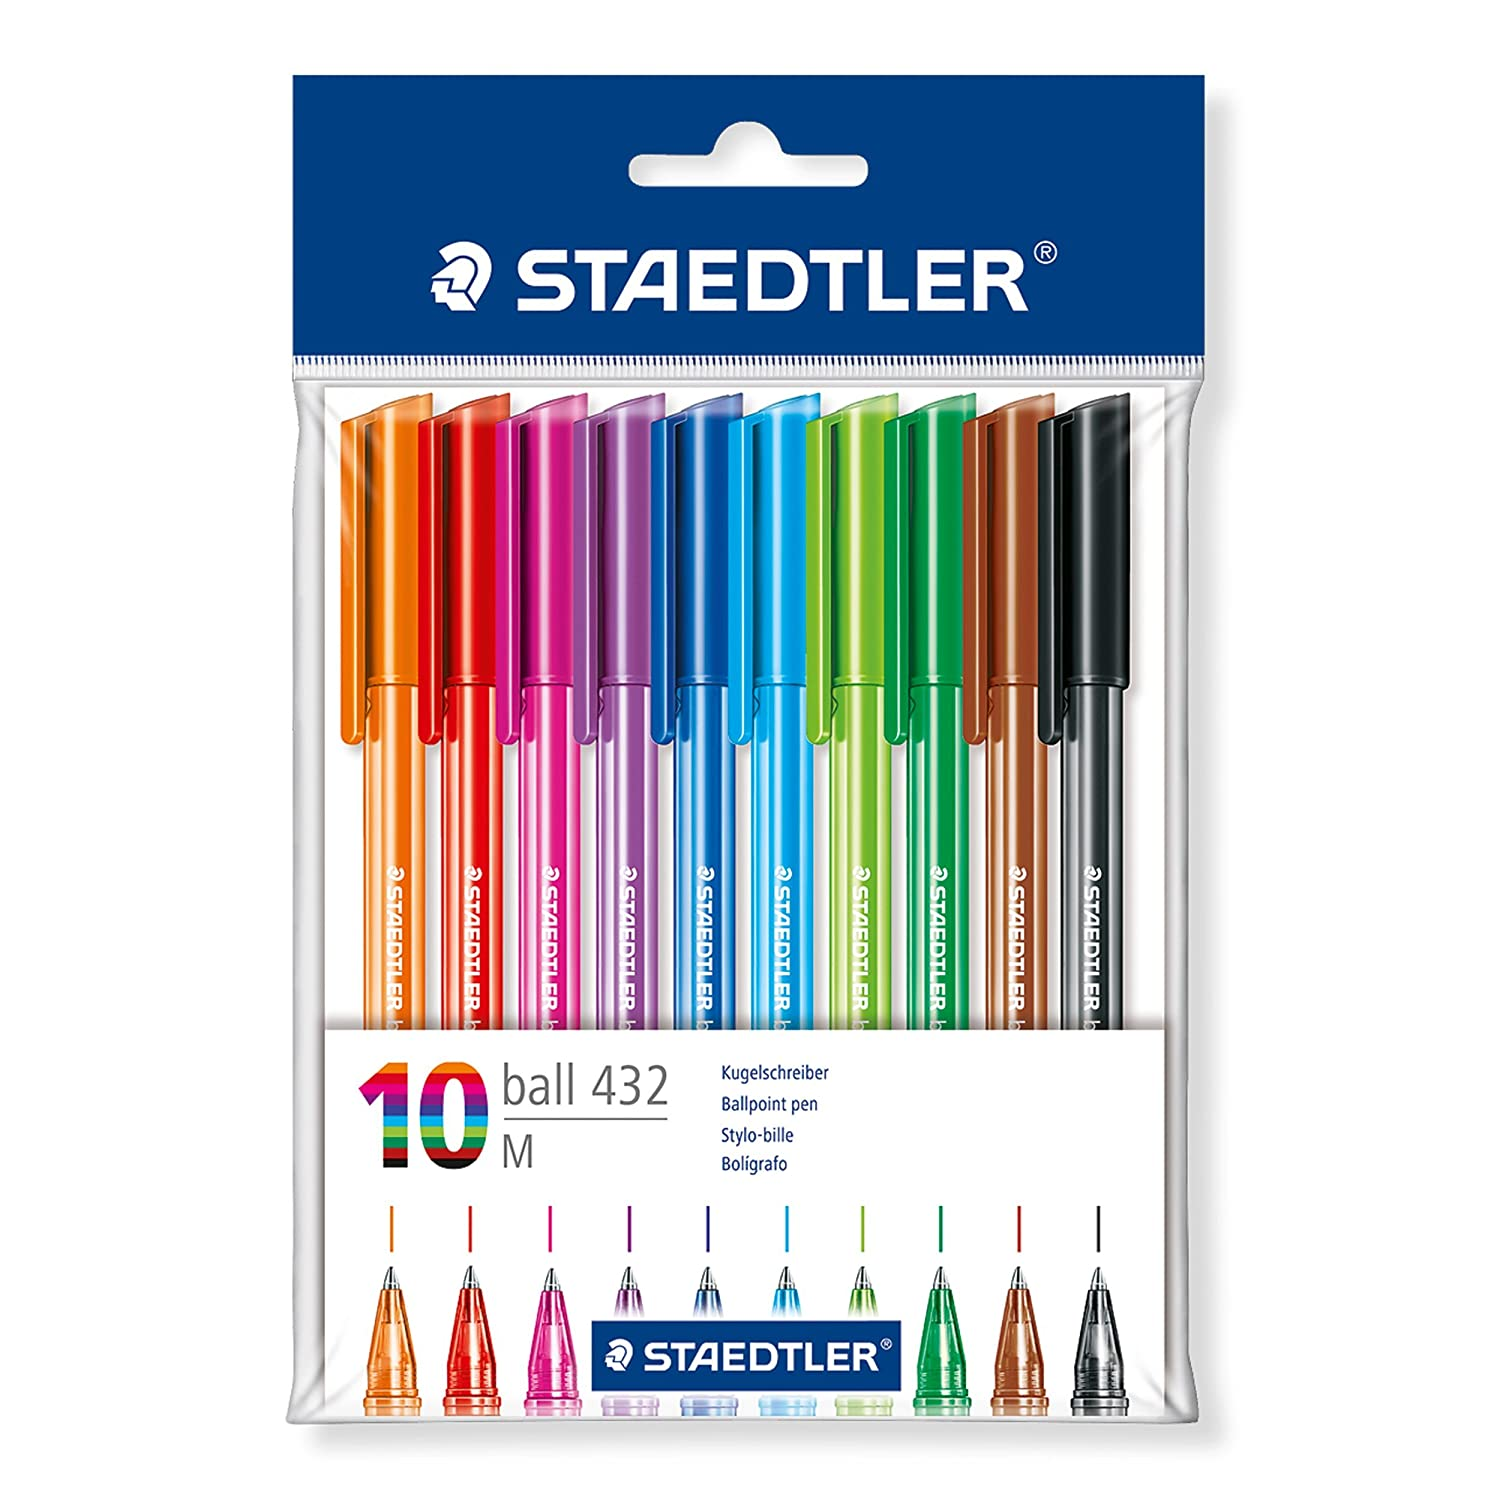 Amazon.com : Staedtler Ballpoint Stick Pens, 43235MWP10TH : Office Products